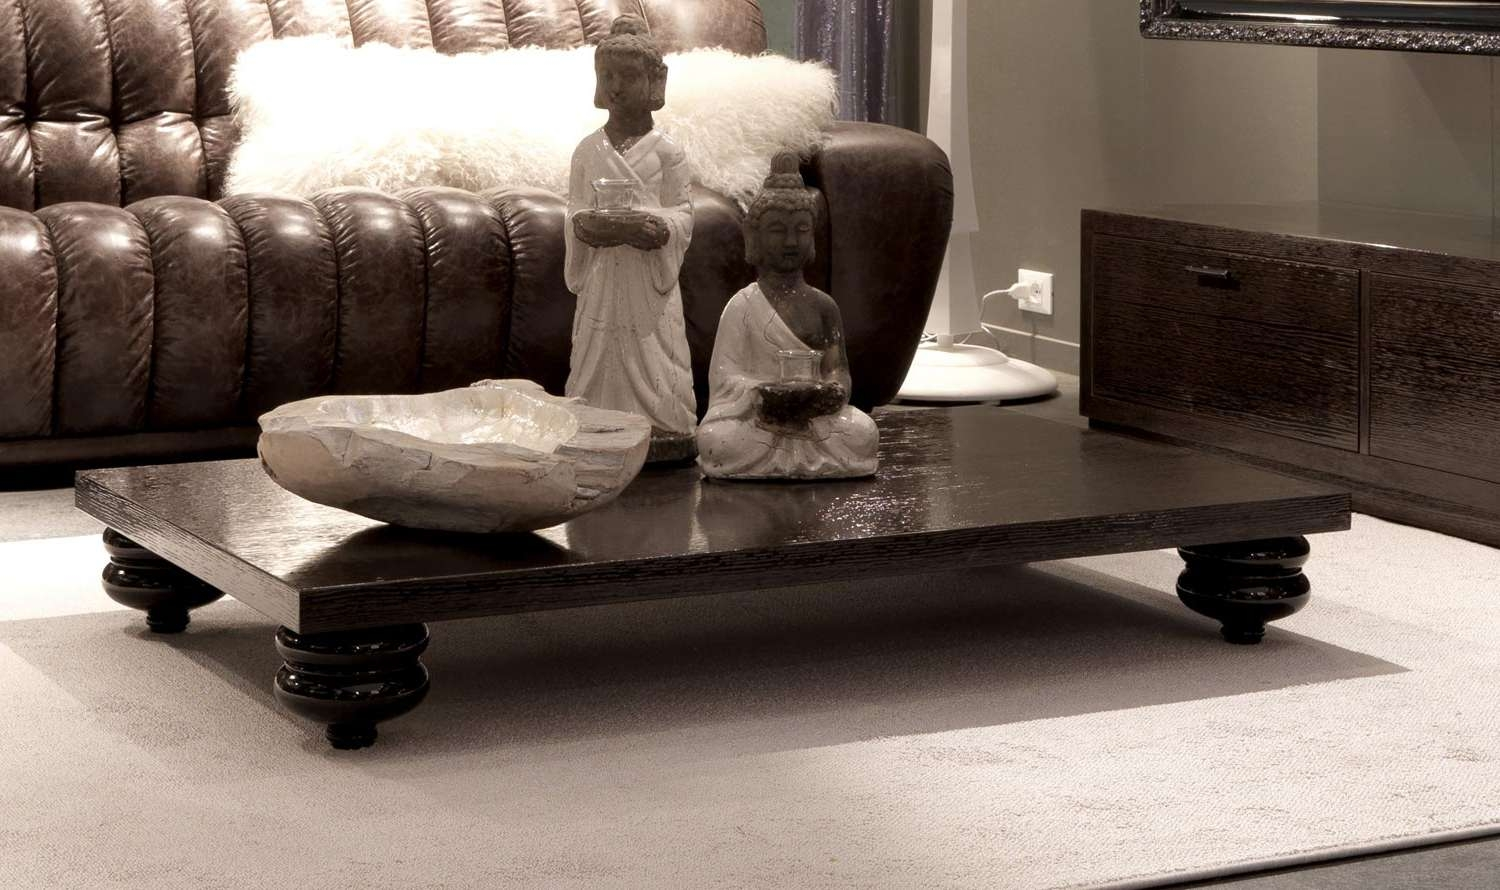 Most Recent Luxury Coffee Tables Throughout Leon Coffee Tables Cortezari Italian Luxury Furniture High End (View 16 of 20)